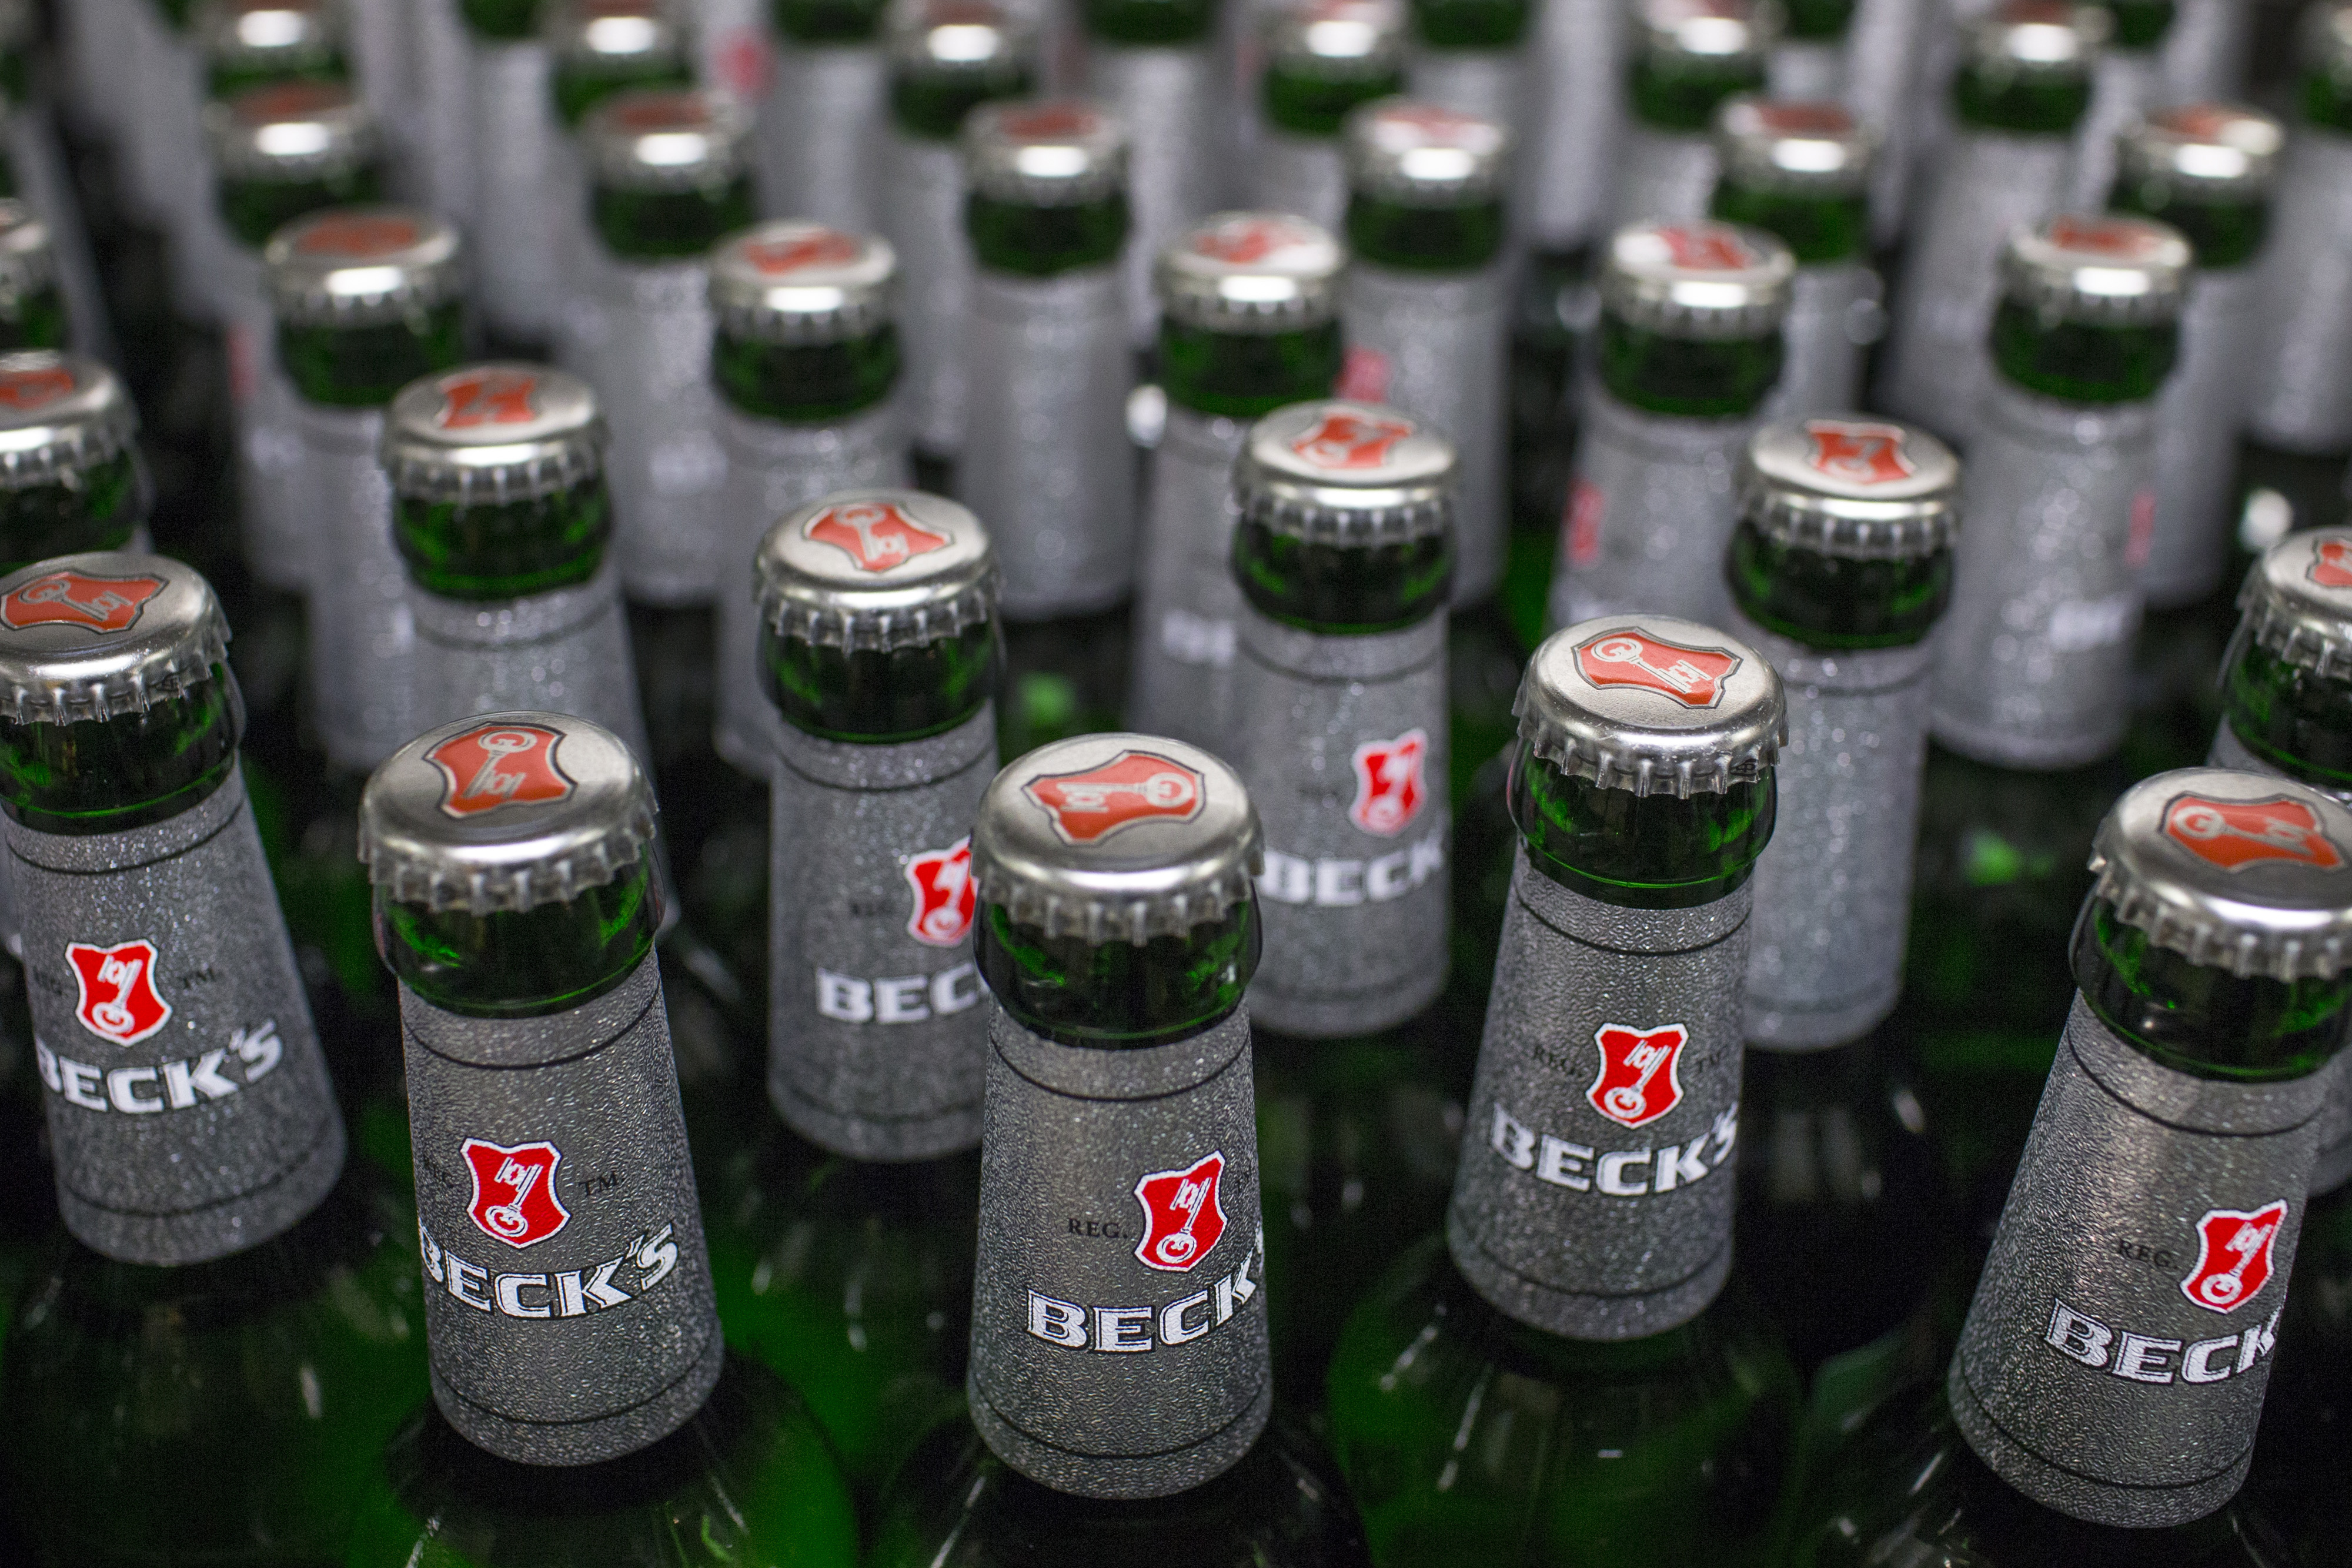 Bottles of Beck's lager beer move along the production line at the Beck's brewery, operated by Anheuser-Busch InBev NV, in Bremen, Germany on Nov. 4, 2015.